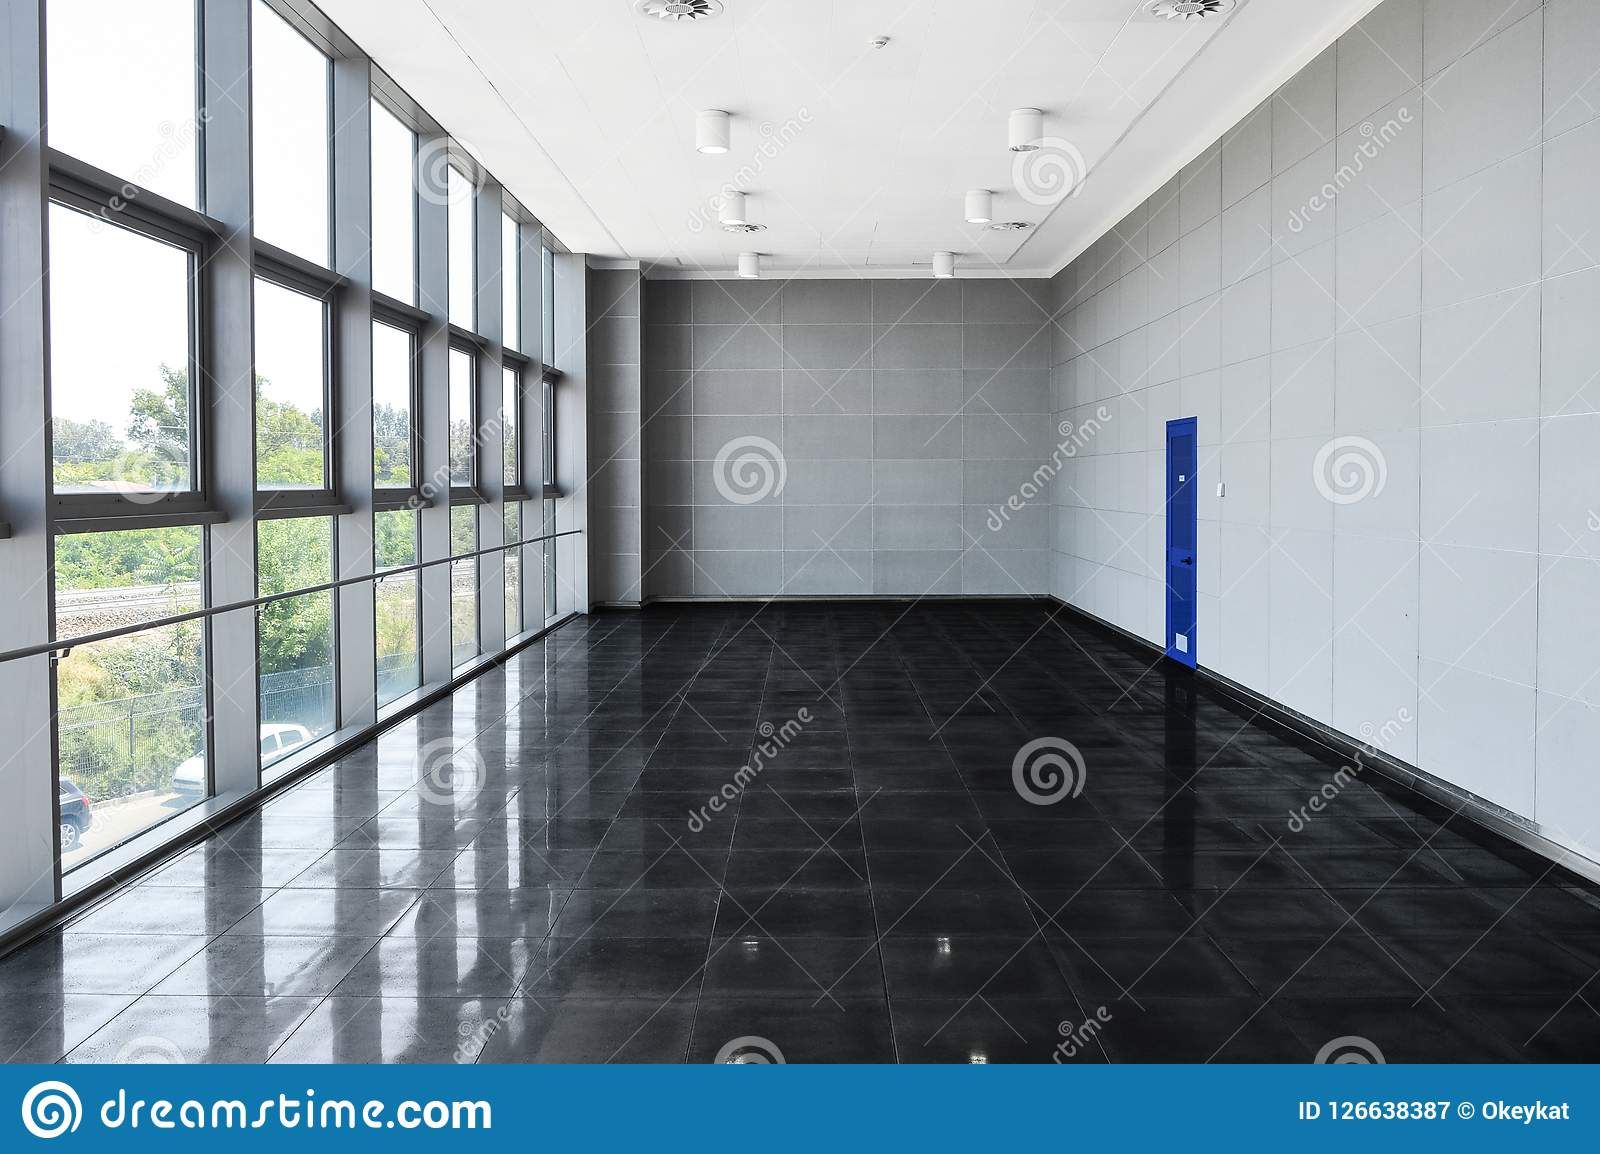 Big empty office space with window wall. Day light illumination.